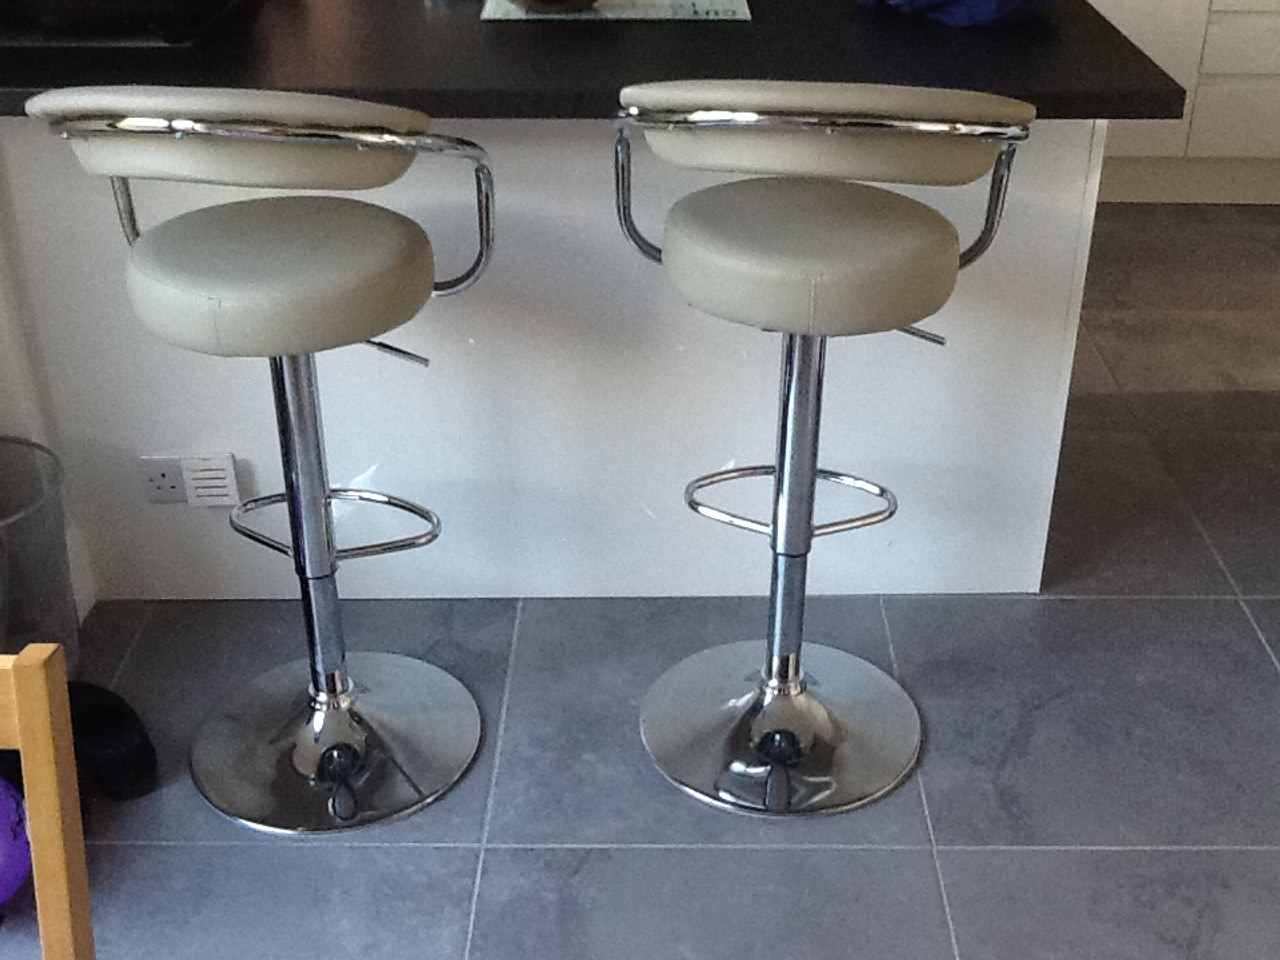 Zenith Grey Bar Stool Breakfast Bar Stool Black Bar Stool : zenithgrey943141499771202 from www.simplybarstools.co.uk size 960 x 720 jpeg 135kB